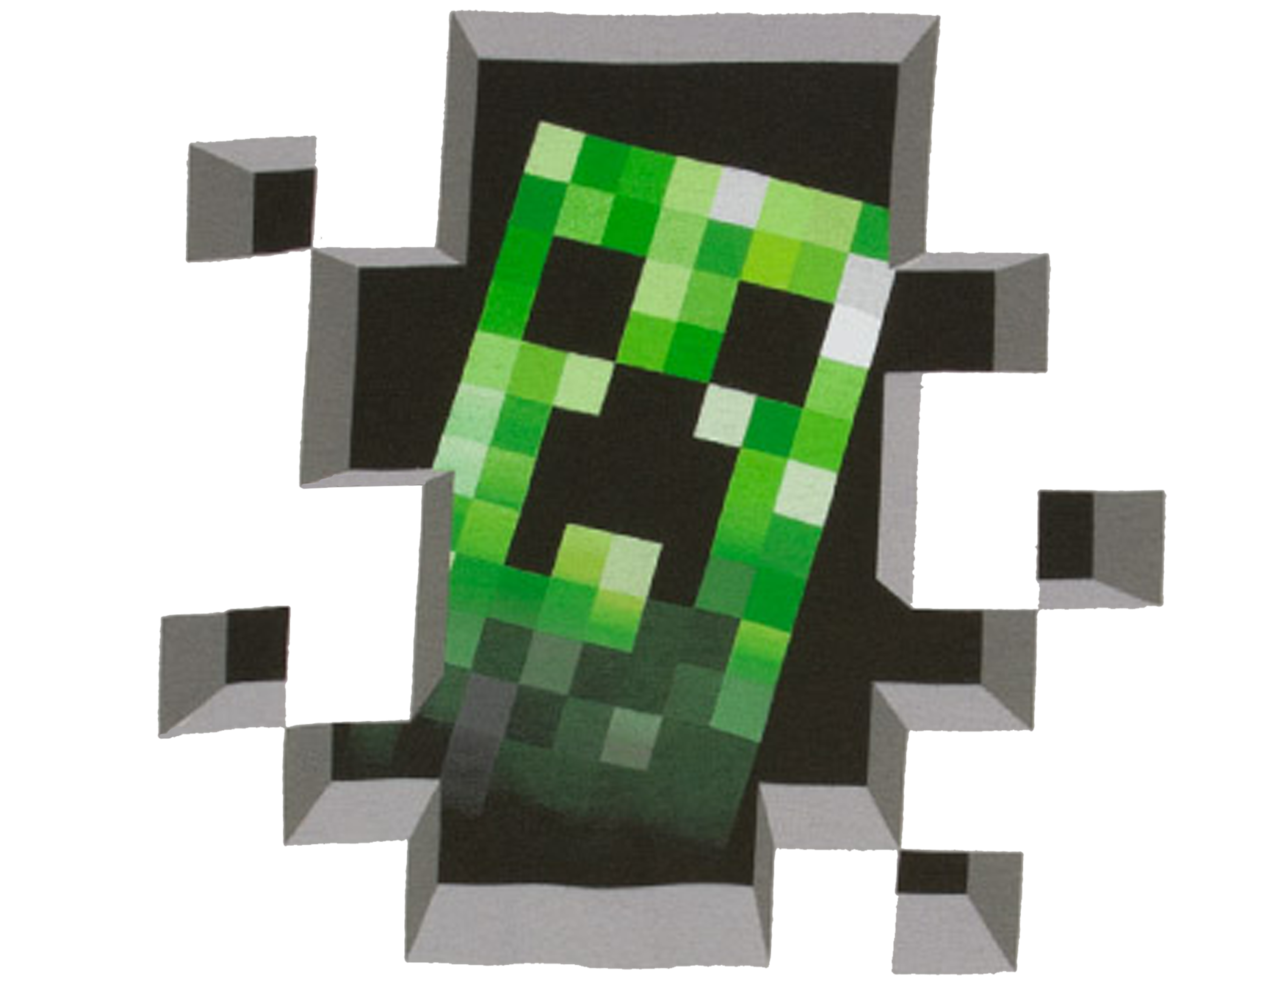 Green Minecraft creeper looking through a wall opening